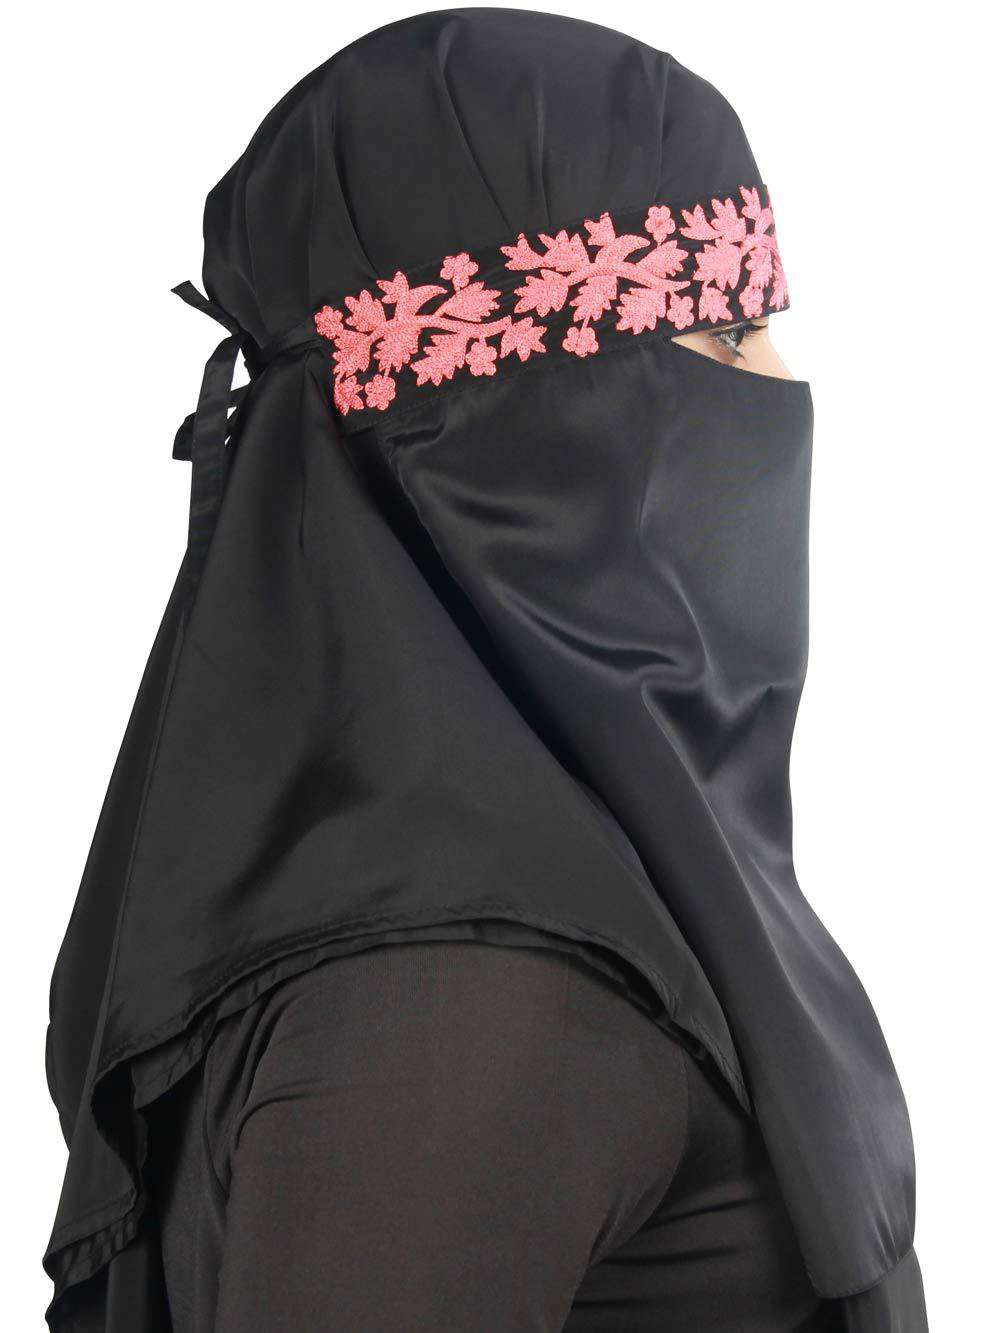 Alishba Black Crepe Embroidered Niqab